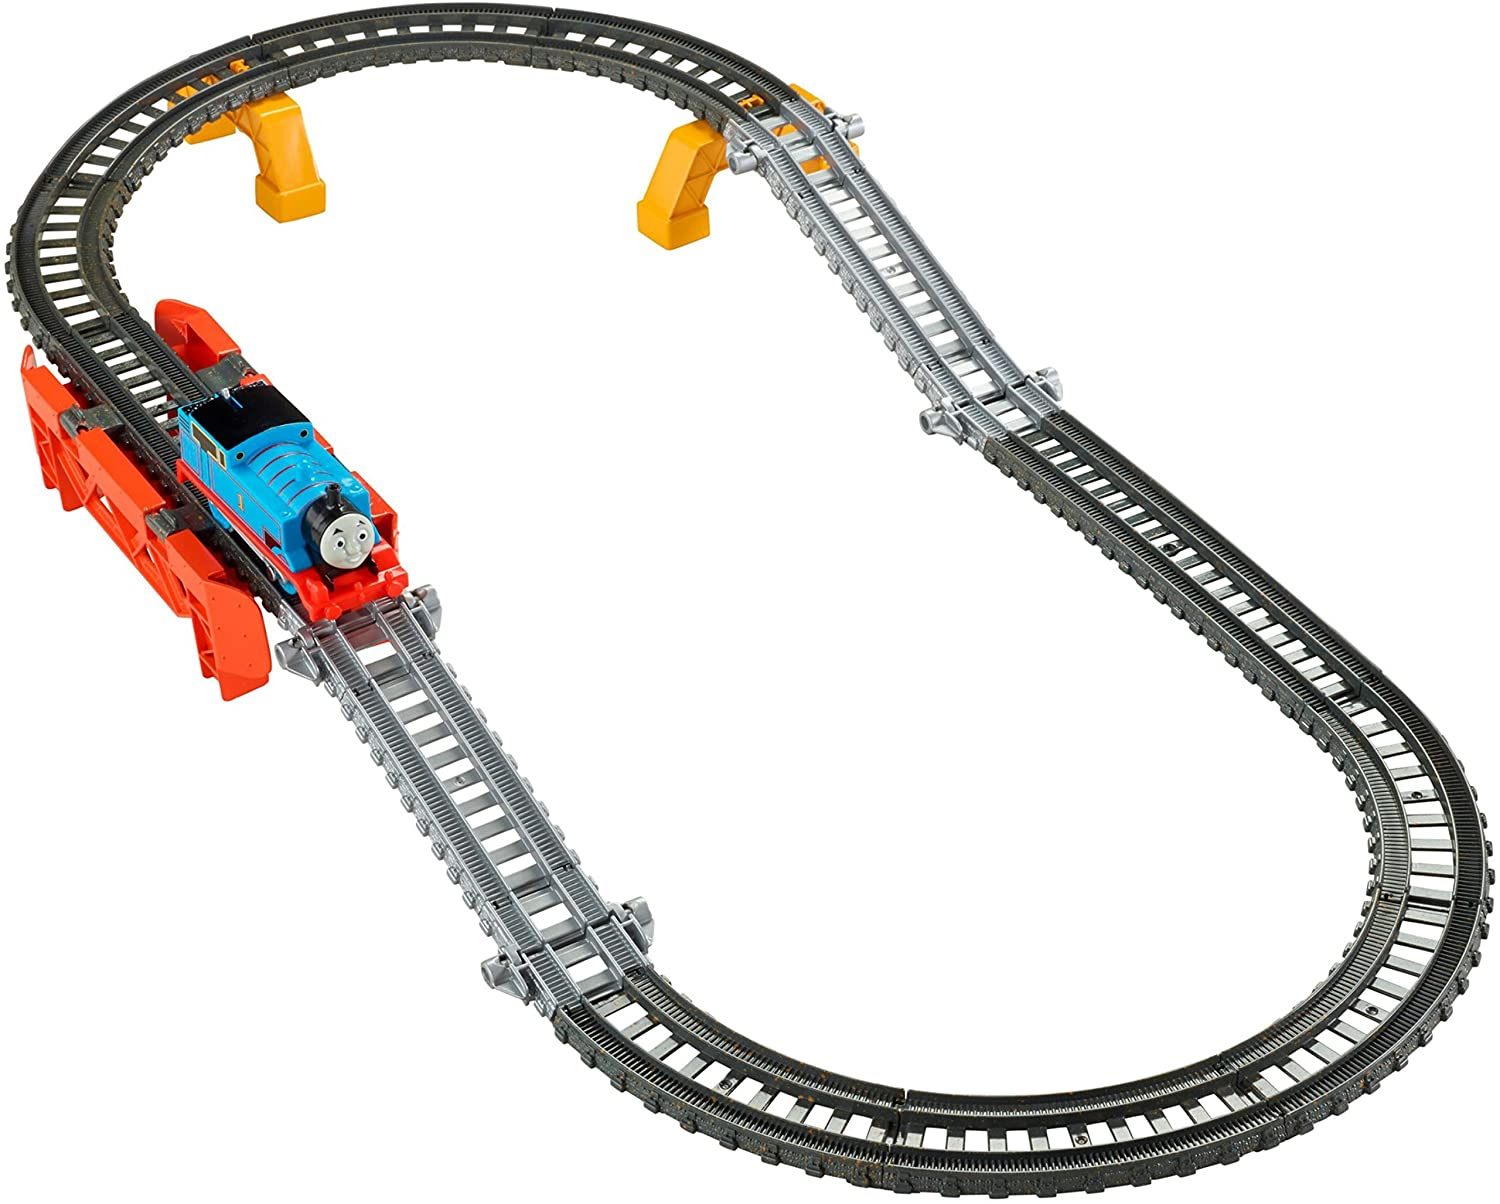 Fisher-Price Thomas & Friends TrackMaster, 2-in-1 Track Builder Set